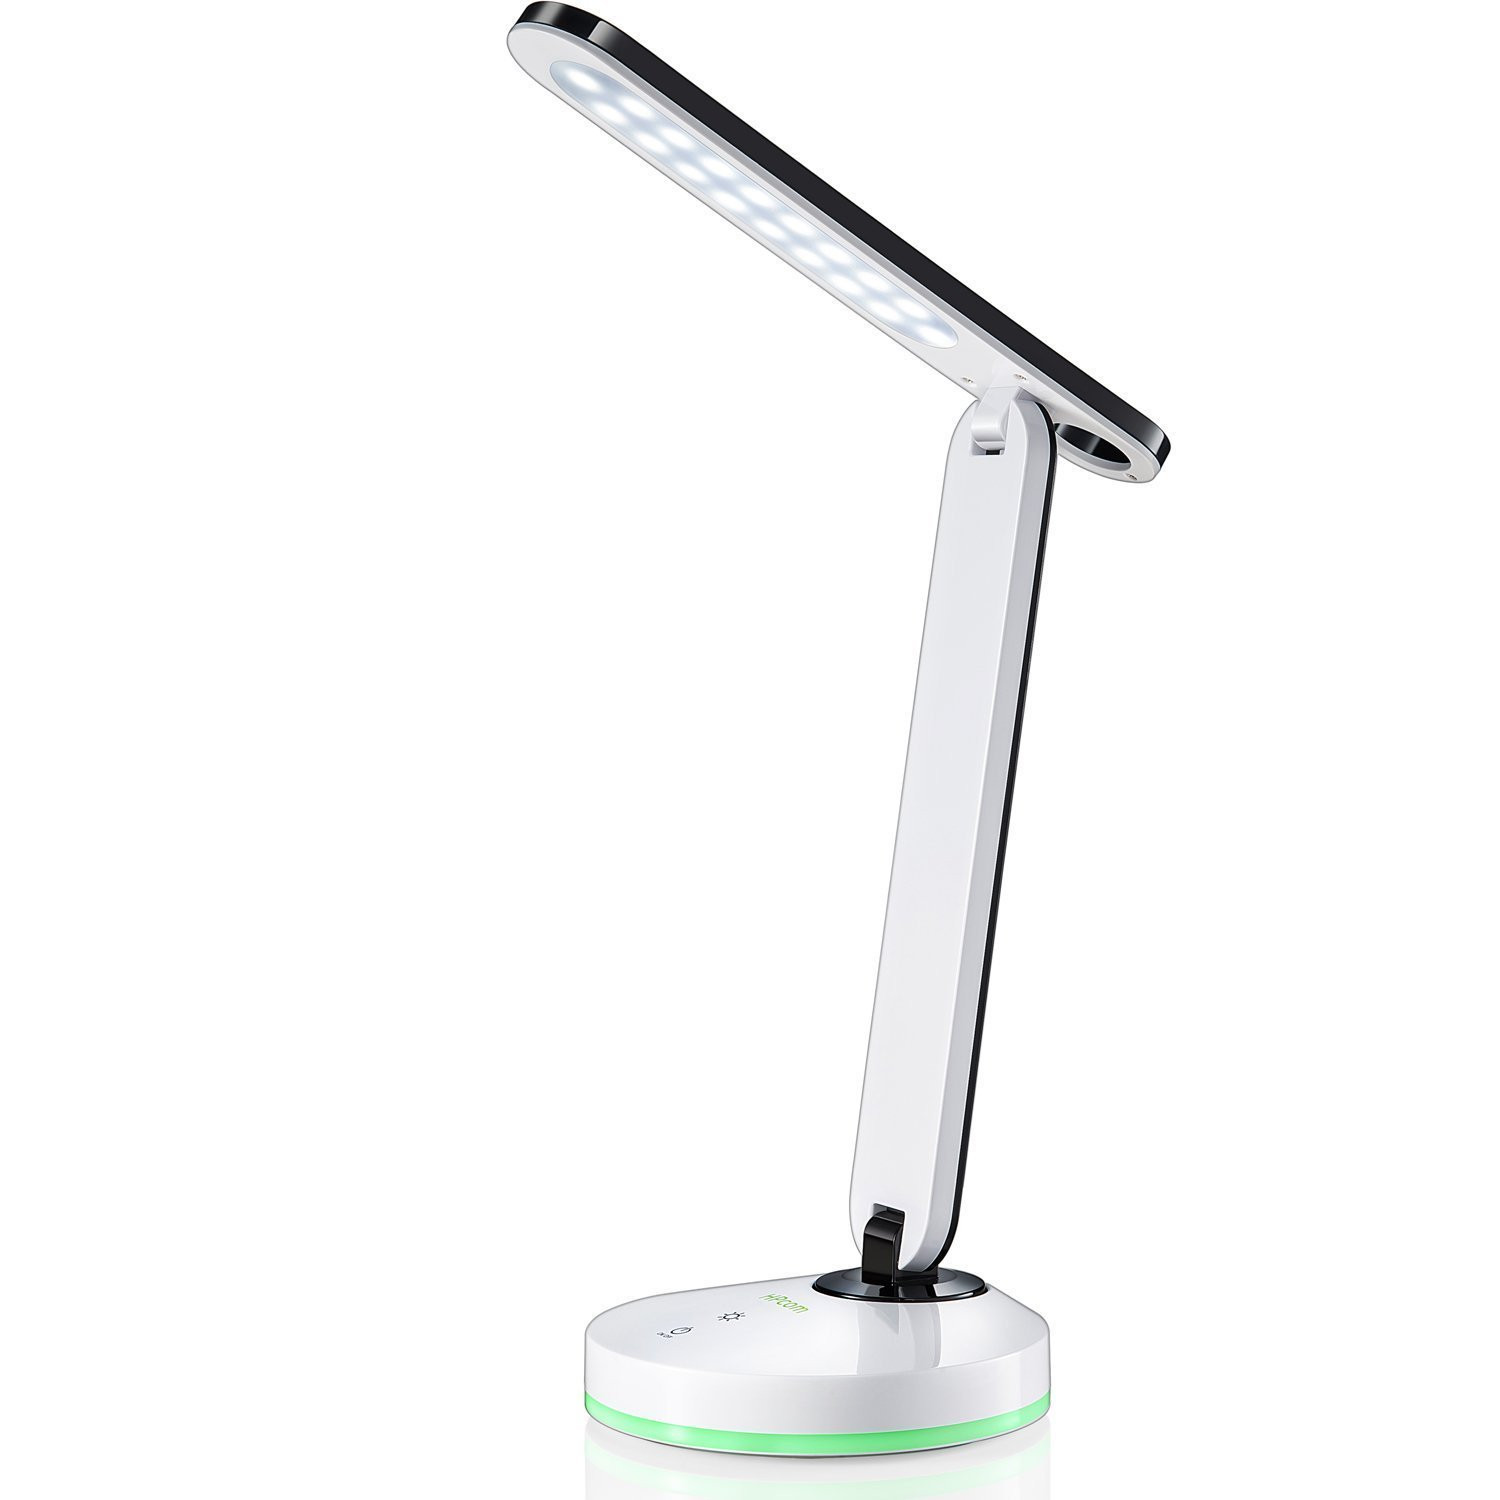 Best ideas about Cordless Desk Lamp . Save or Pin HP Desk Table Lamp LED Cordless Rechargeable Now.